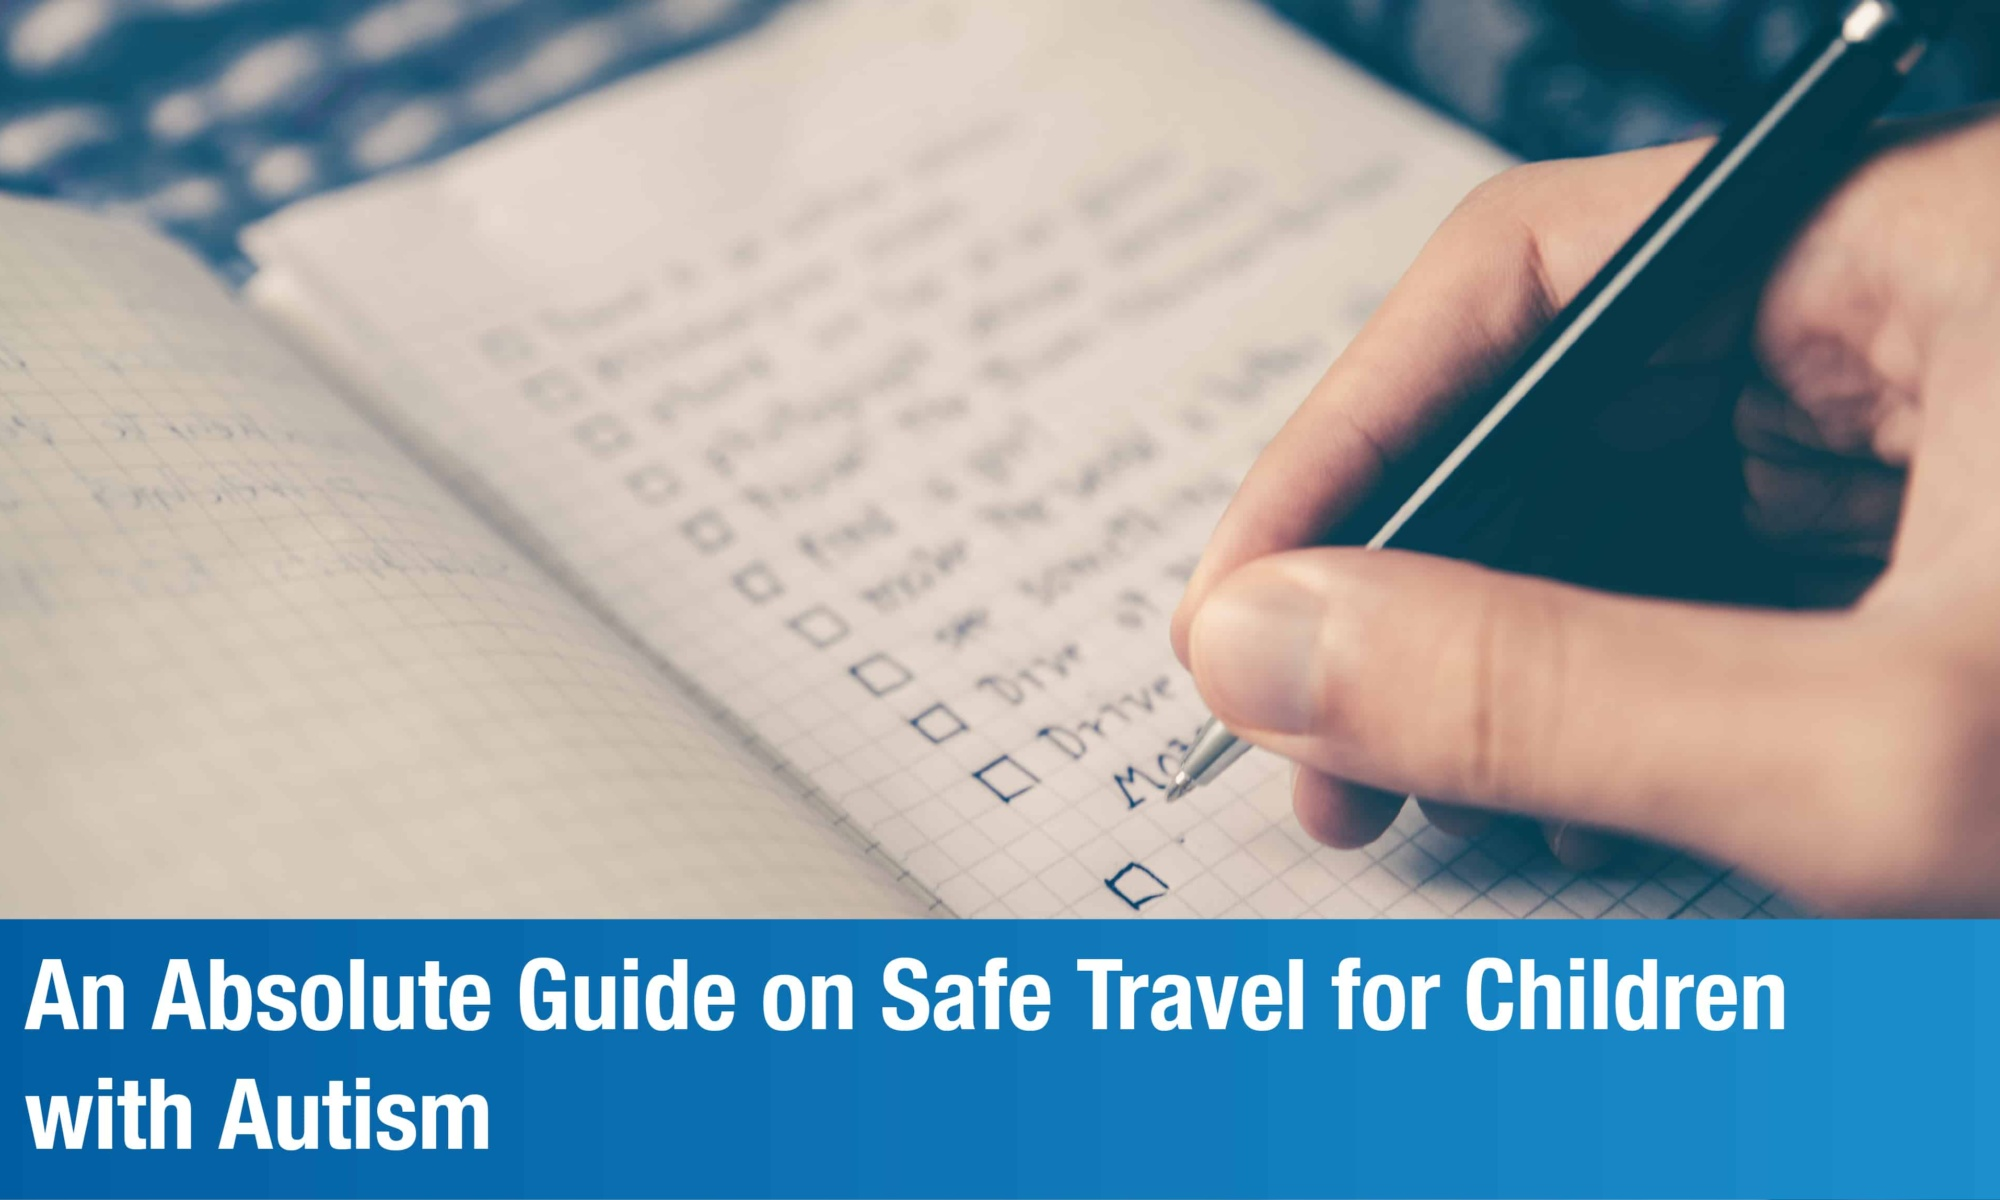 An Absolute Guide on Safe Travel for Children with Autism